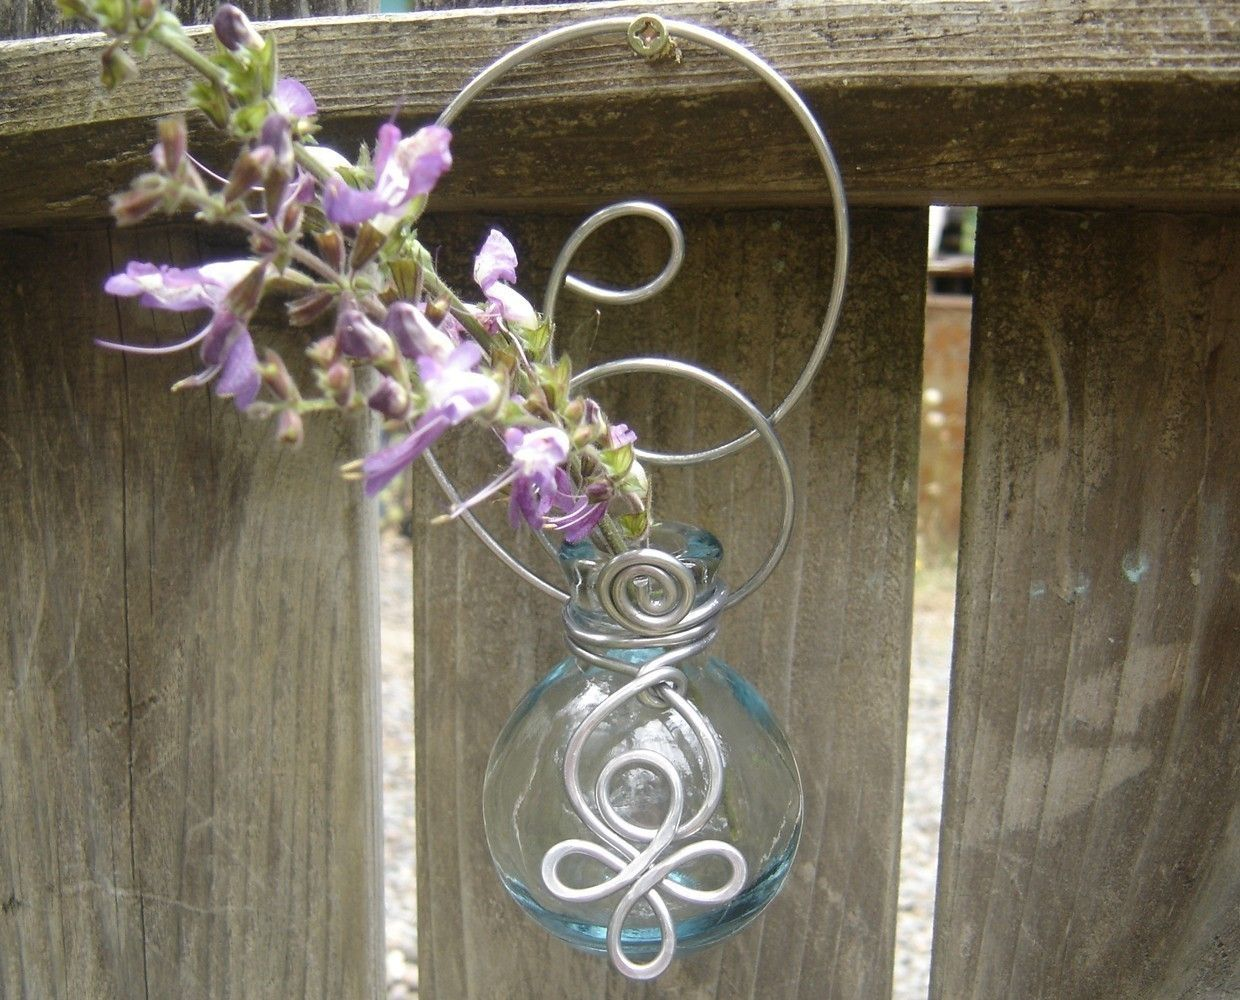 Hanging Wall Vase - Clear Round Little Celtic Spirals - for flowers,  rooting cuttings or just looking pretty-patio, sunroom, porch, kitchen. $16.00, via Etsy.